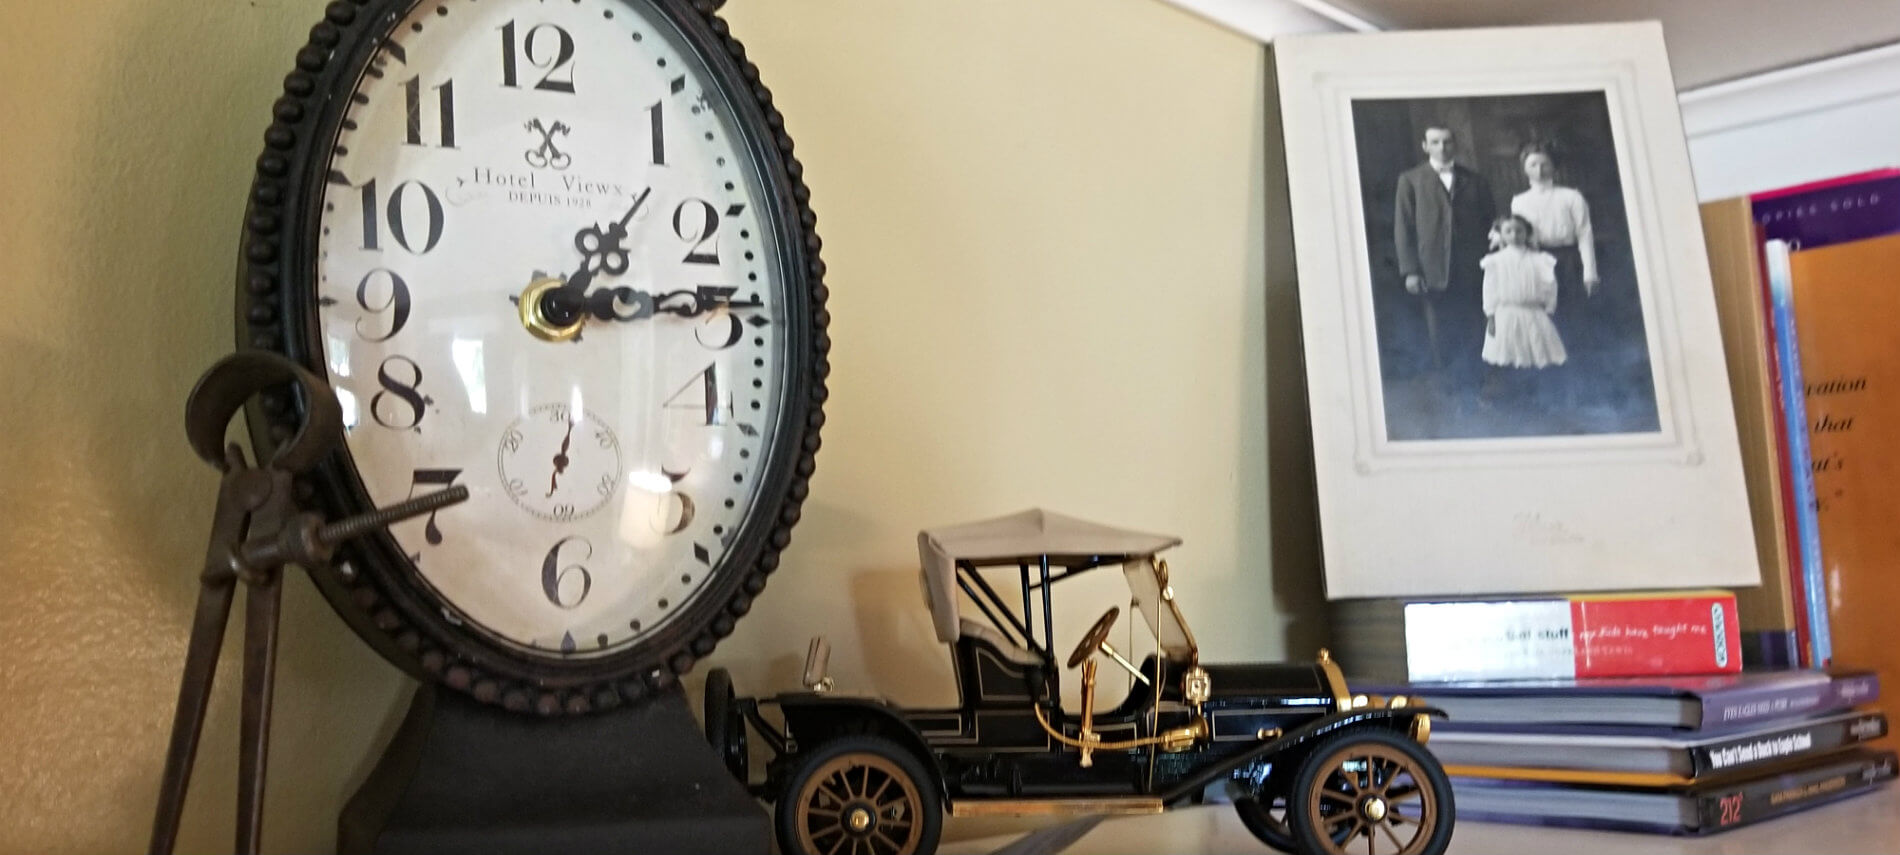 Old fashioned metal clock, old-fashioned model kit car, stack of book and old black and white photo